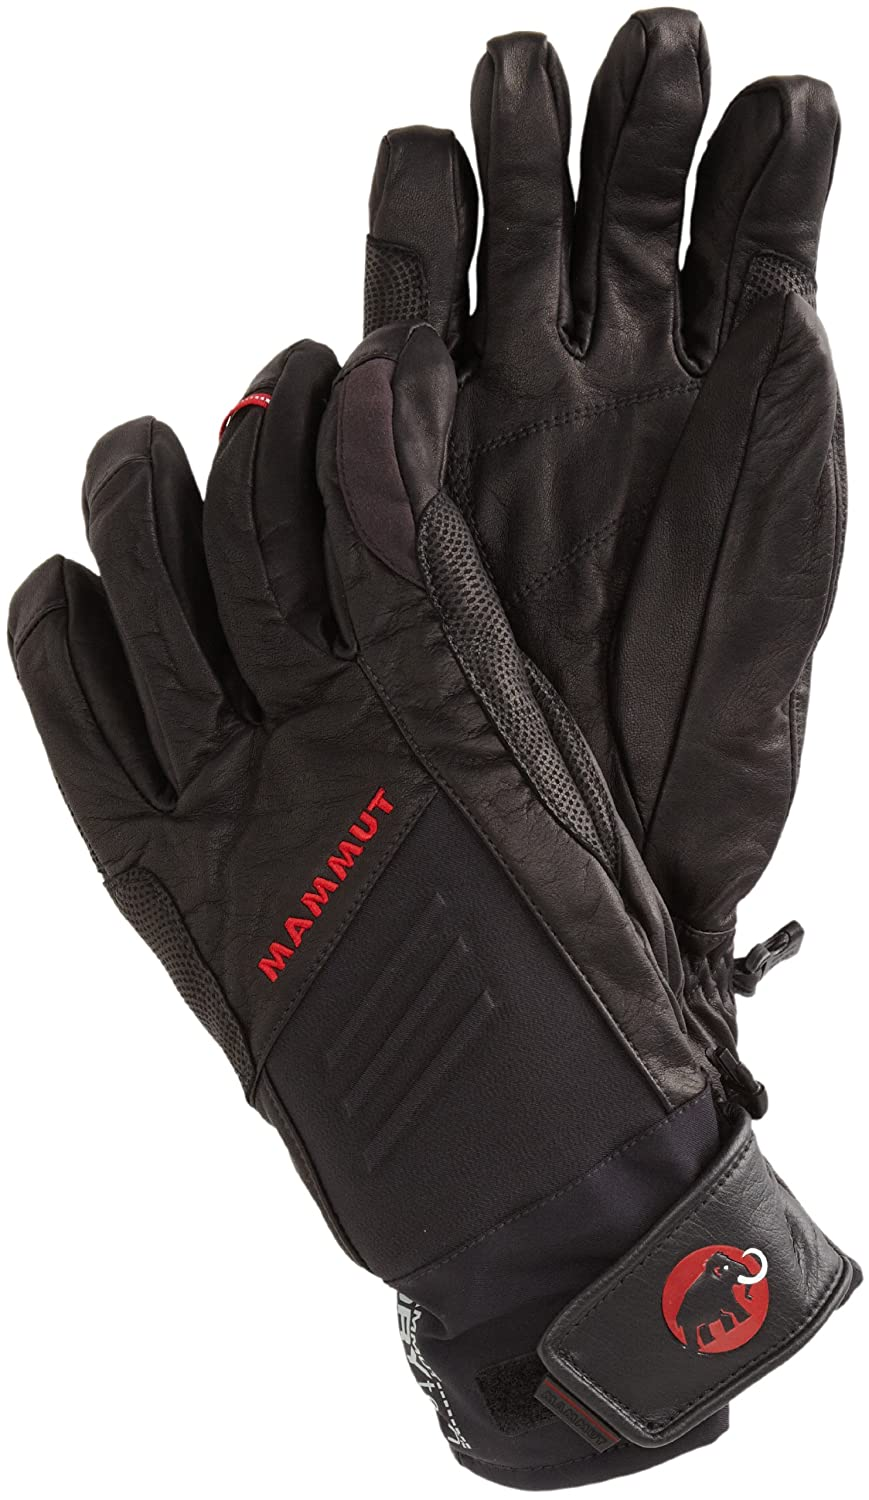 Mammut Guide Work Glove - Handschuhe